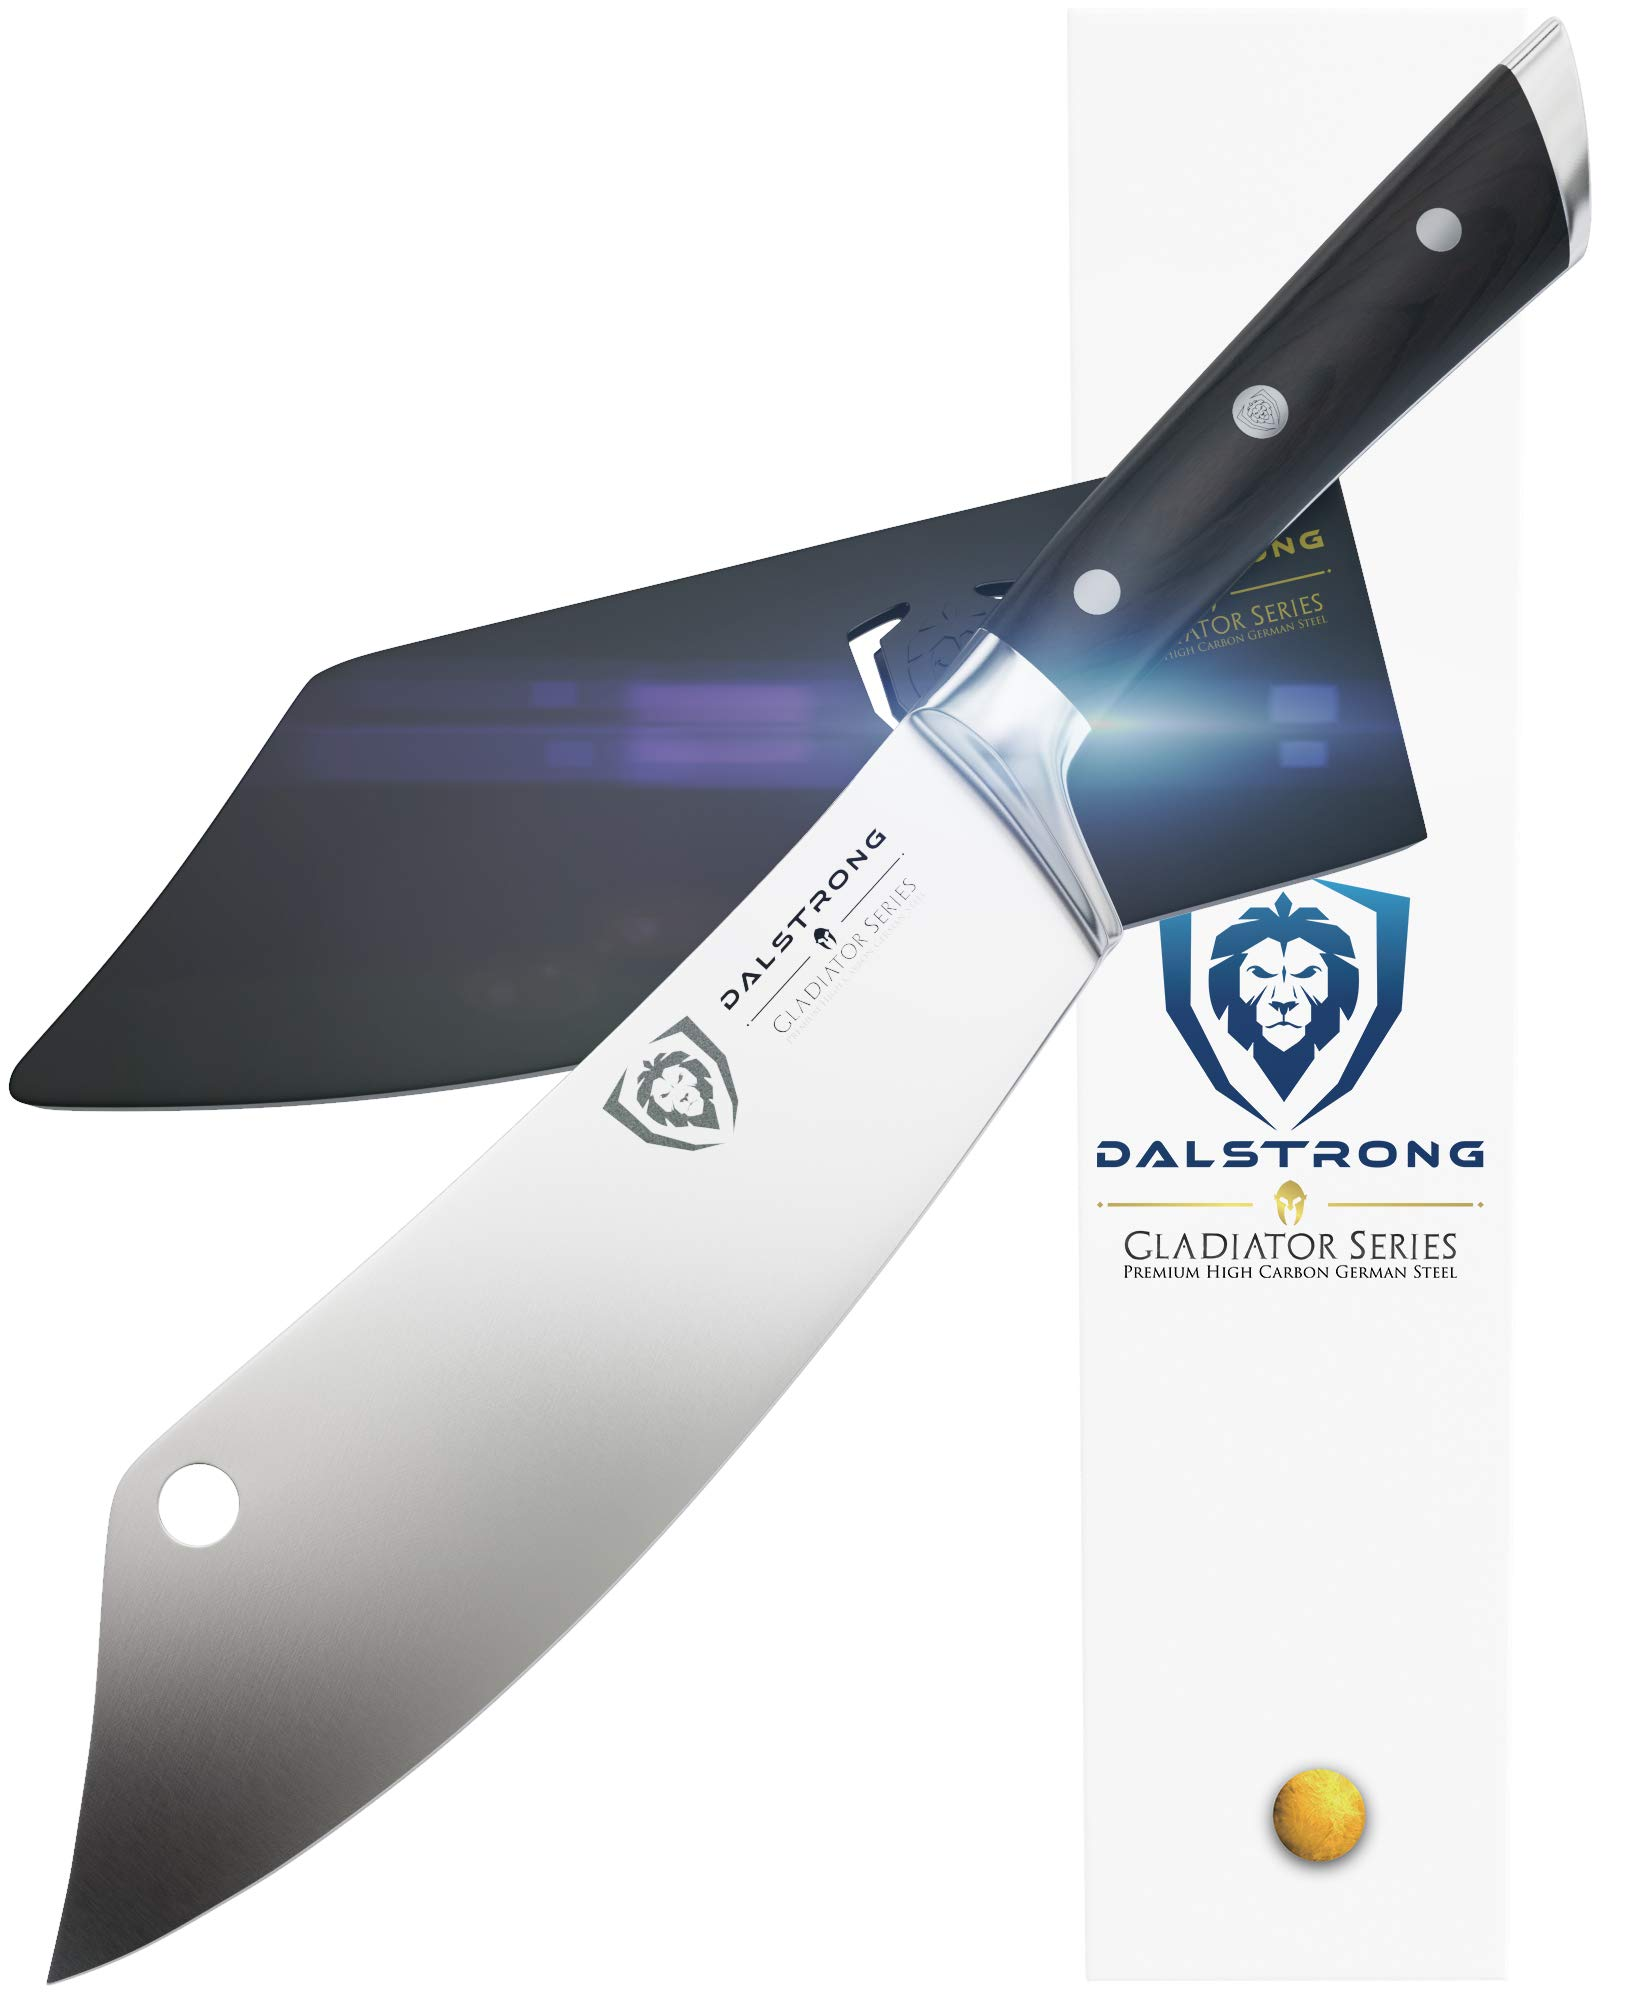 DALSTRONG - 8'' Chef's Knife -''The Crixus'' - Gladiator Series - Chef & Cleaver Hybrid - Meat Knife w/Sheath